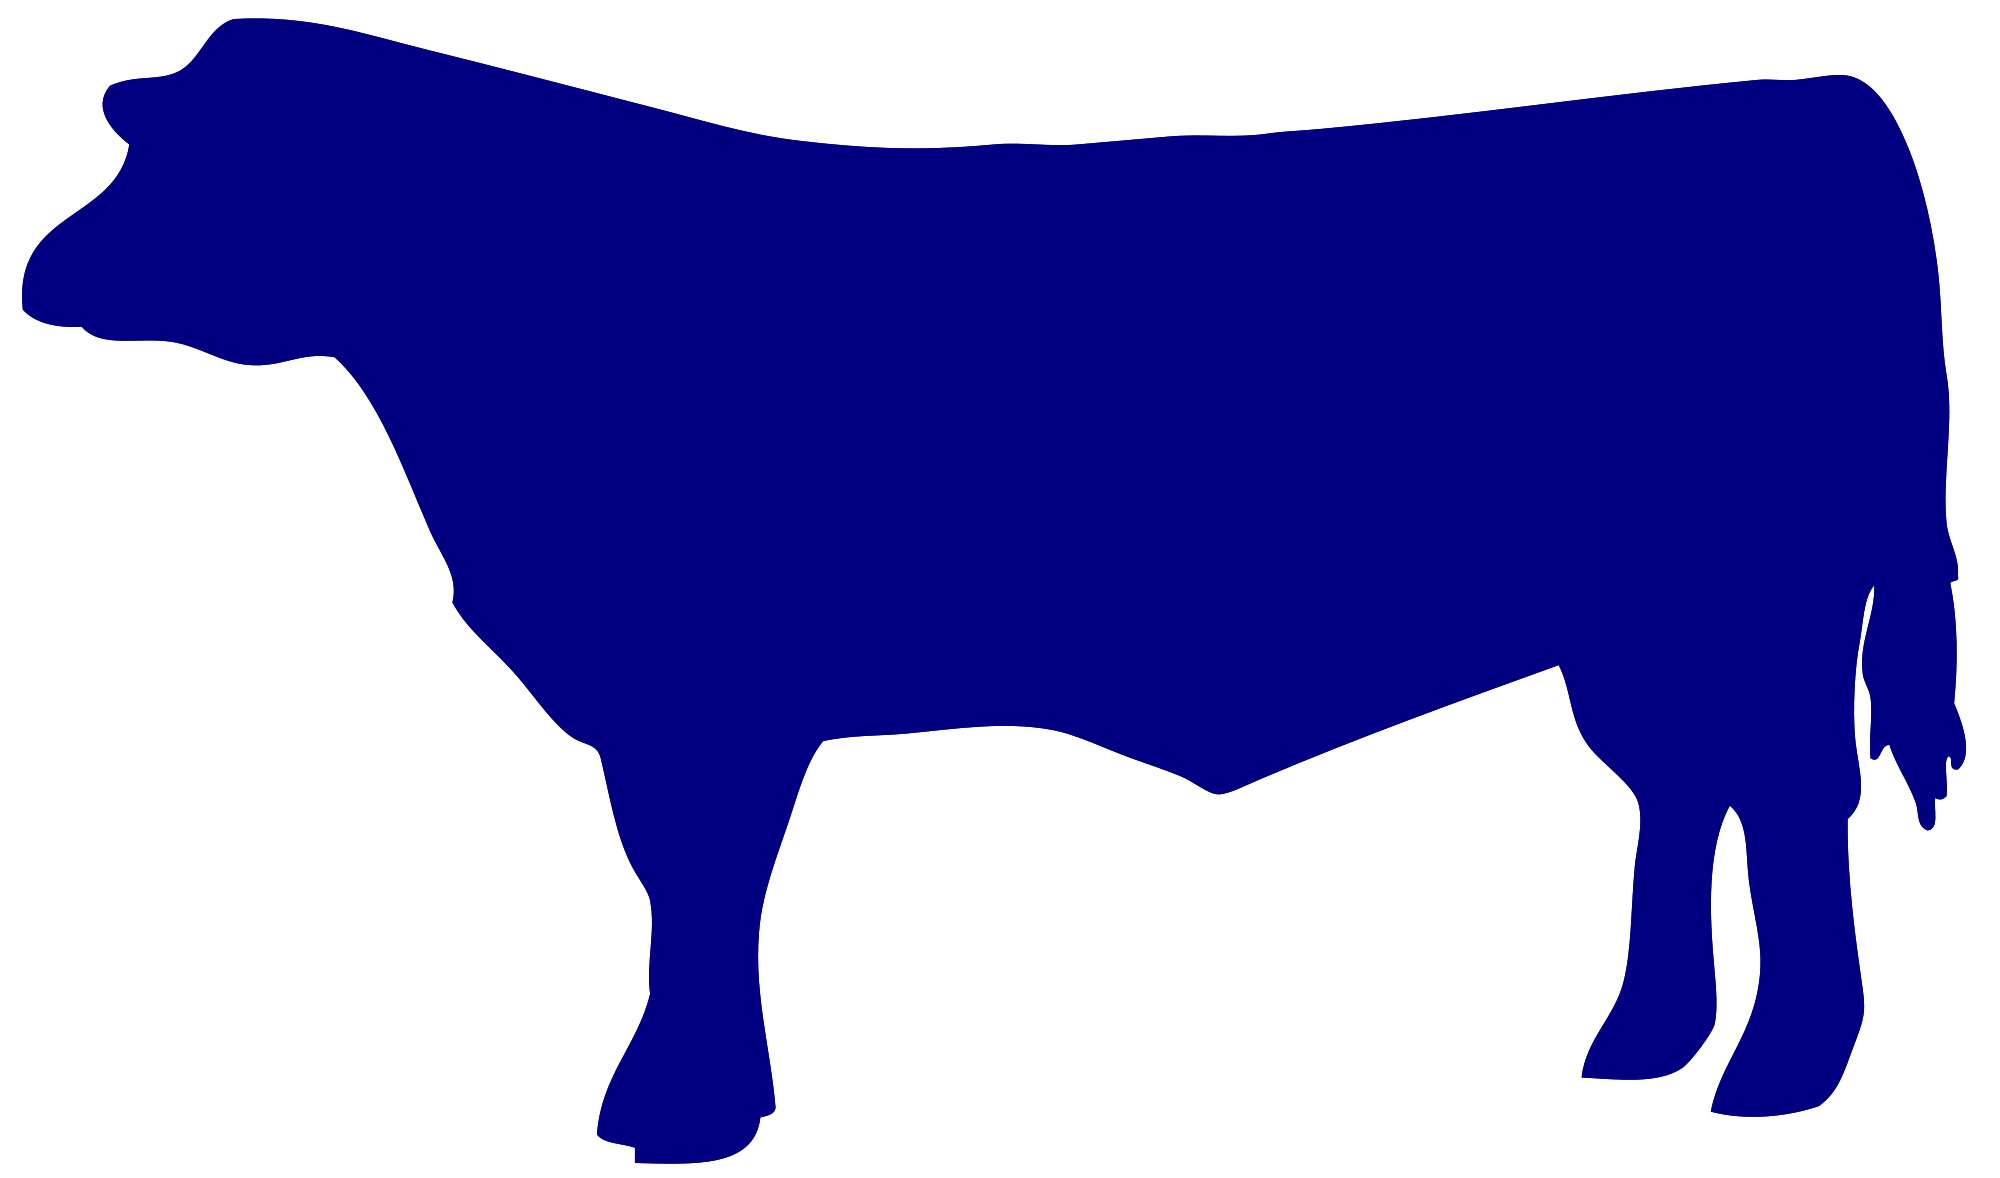 Cattle car clipart picture transparent library Beef Cow Silhouette at GetDrawings.com | Free for personal use Beef ... picture transparent library